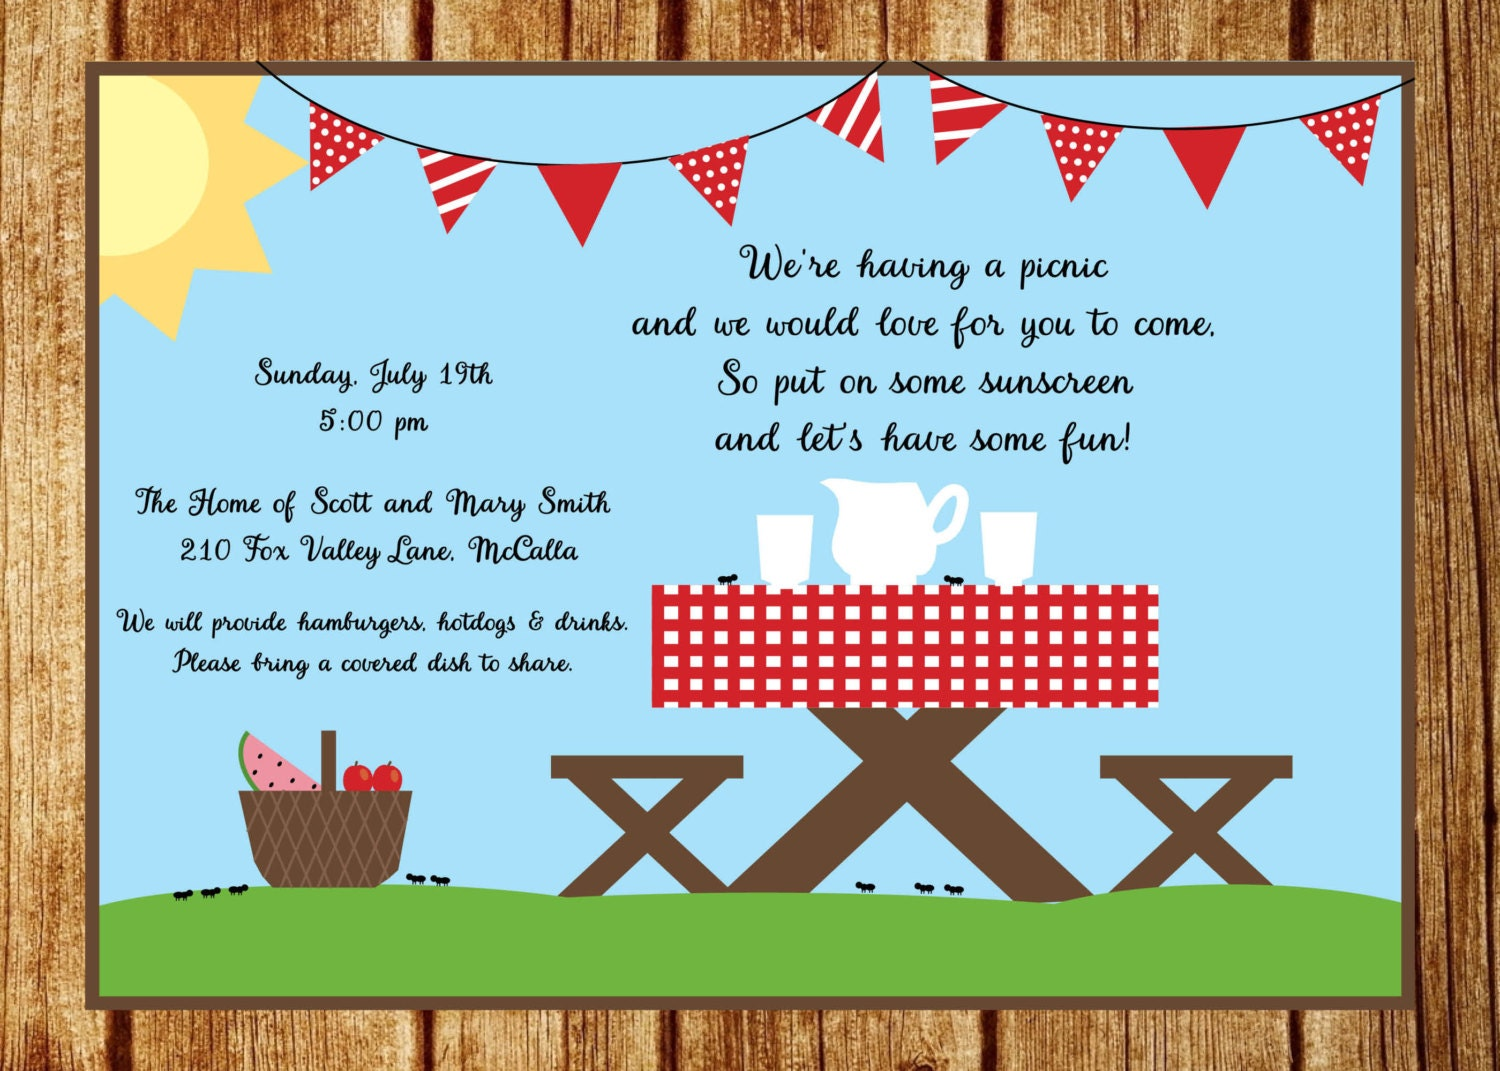 picnic invitations - Ins.ssrenterprises.co